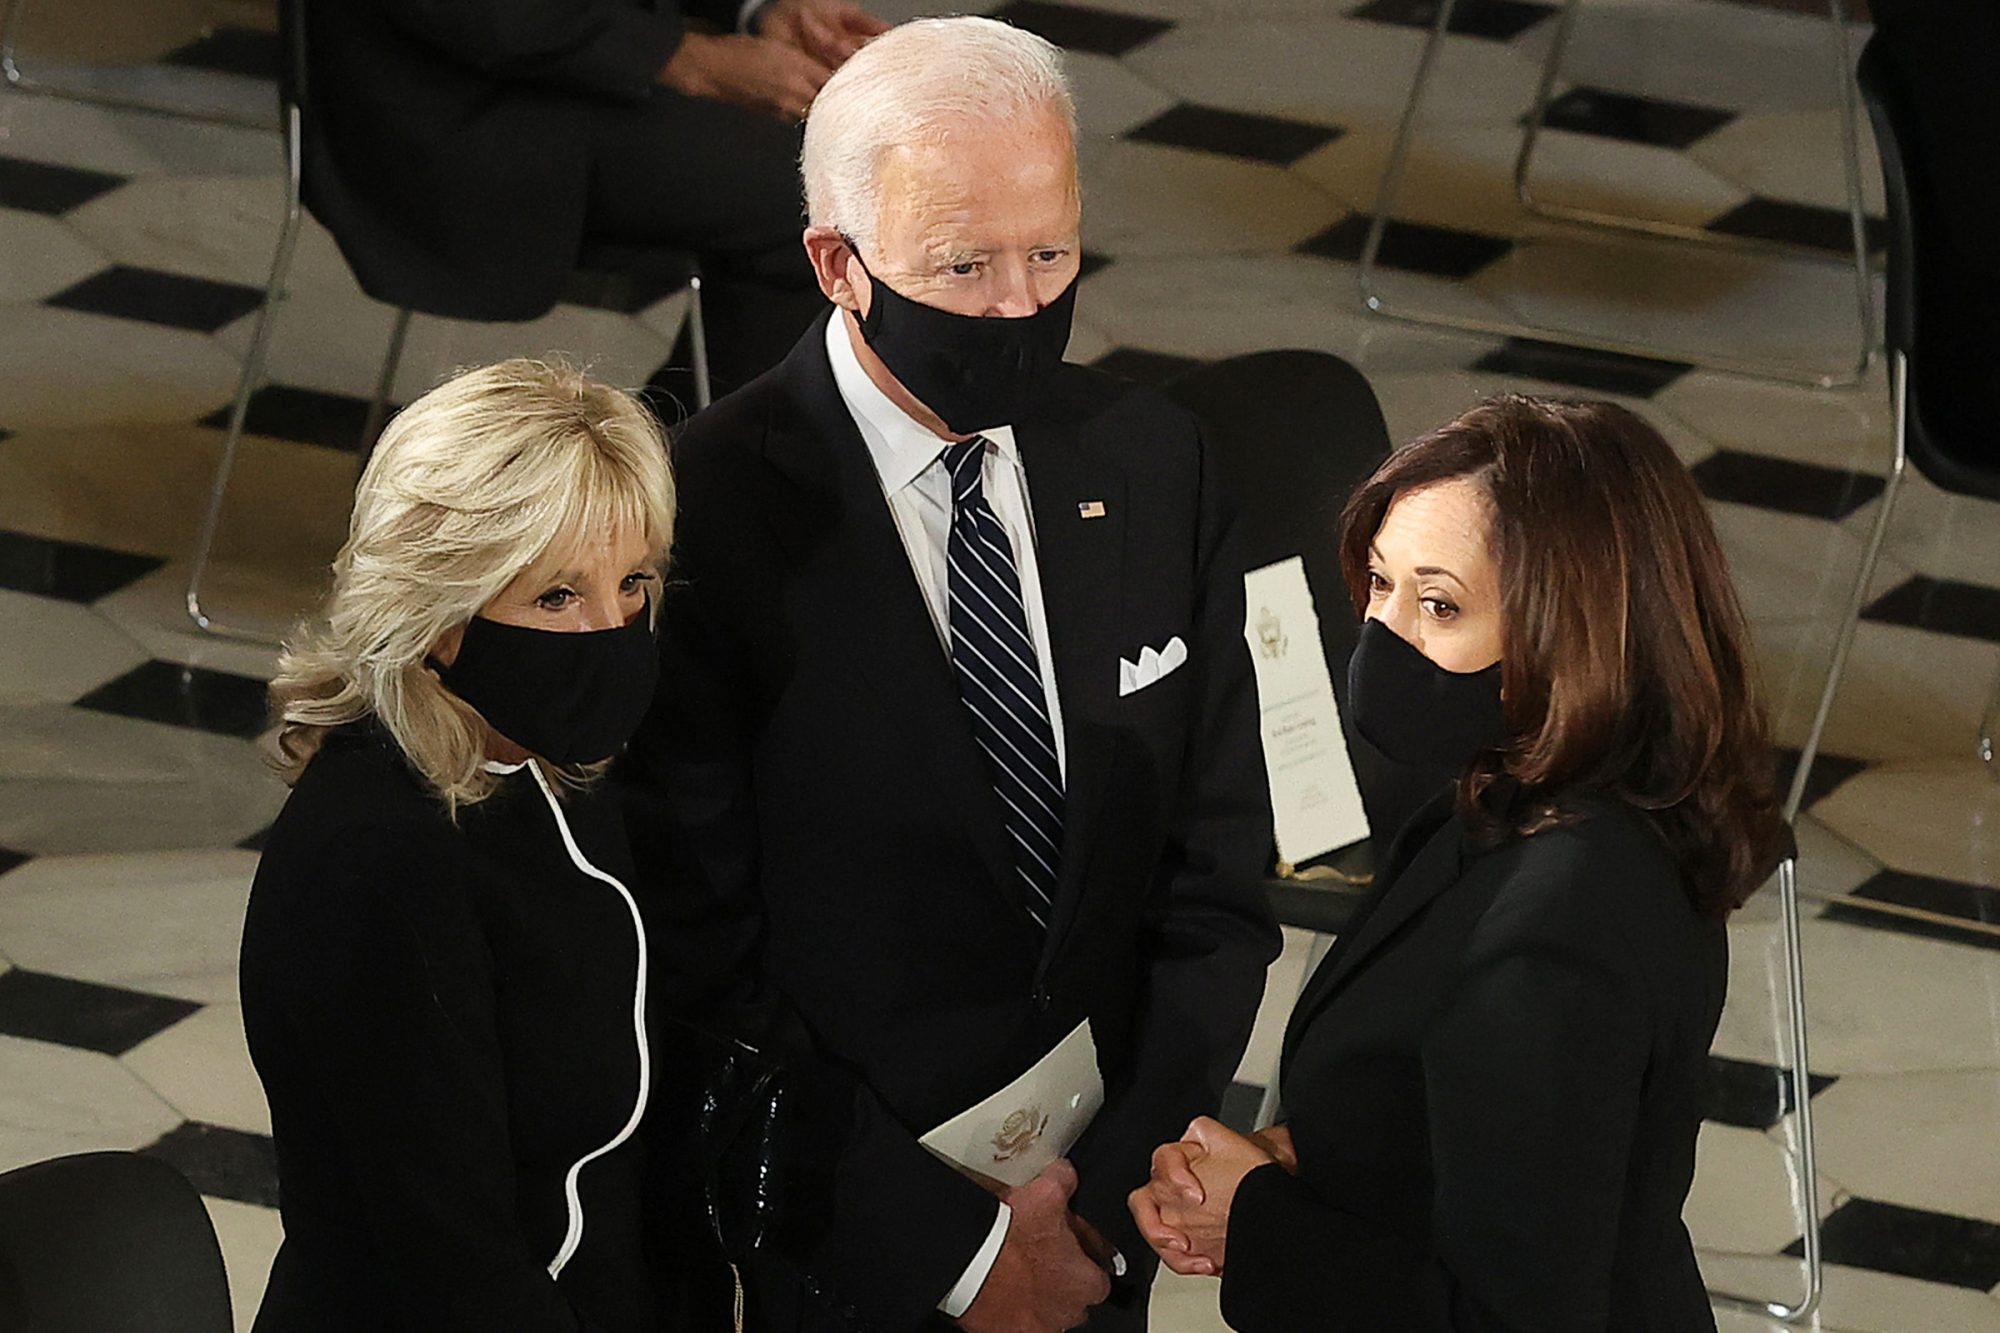 Democratic Presidential Candidate Joe Biden stands with Democratic Vice Presidential candidate Sen. Kamala Harris (D-CA) and his wife Dr. Jill Biden (L) during a ceremony where U.S. Supreme Court Associate Justice Ruth Bader Ginsburg's flag-draped casket will lie in state at the U.S. Capitol